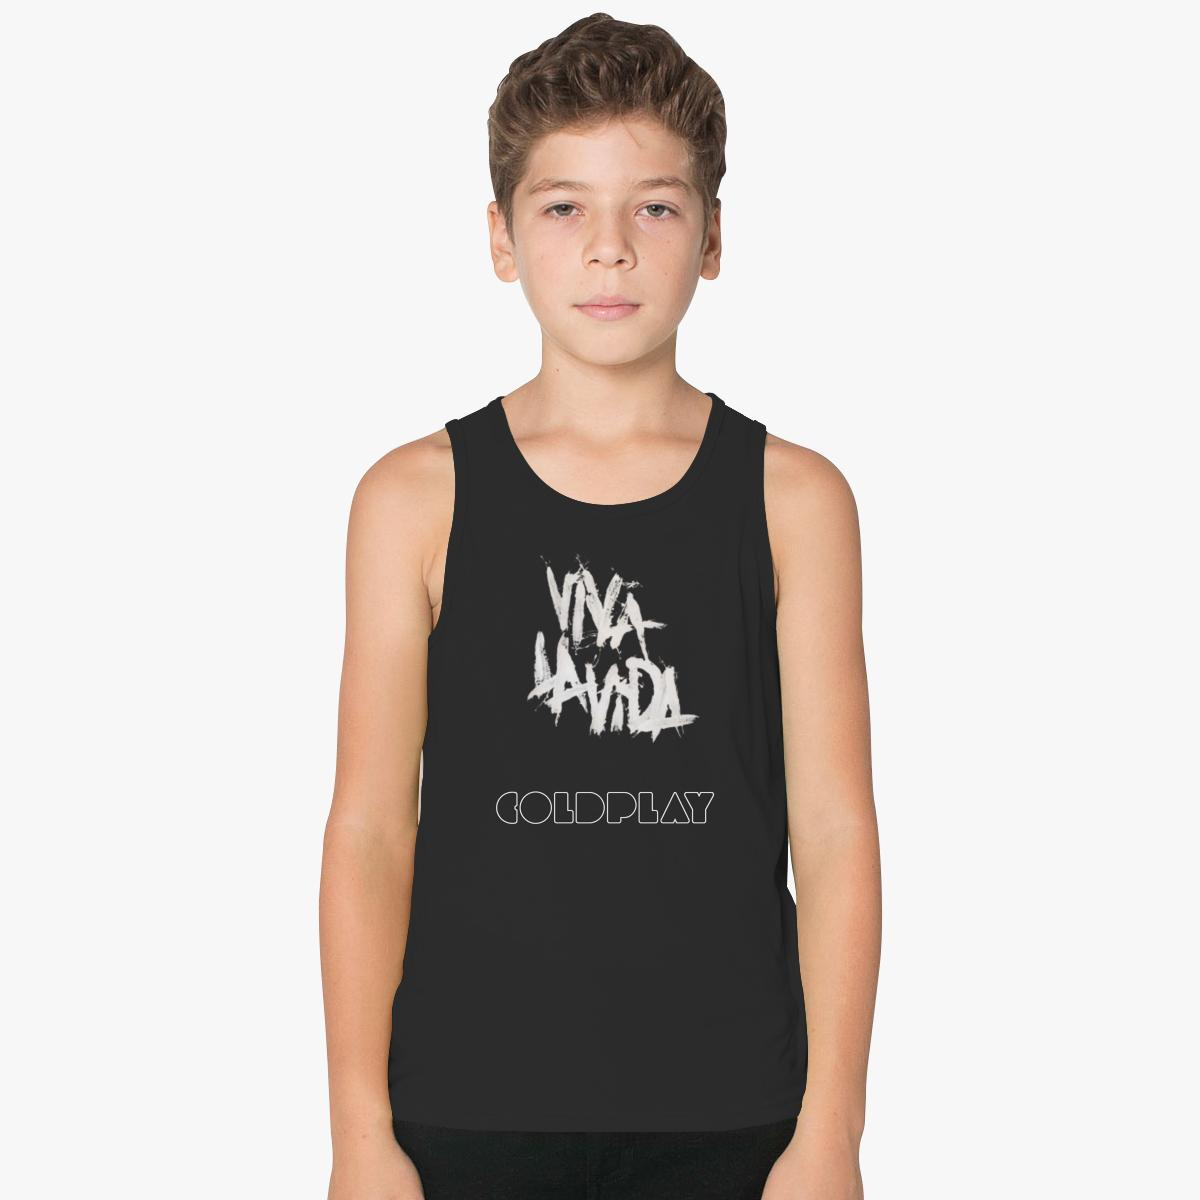 Clearance Perfect Official Site Cheap Online Printed Racerback Top - Cotton 103 by VIDA VIDA Cheap Online Store z5FPfSM